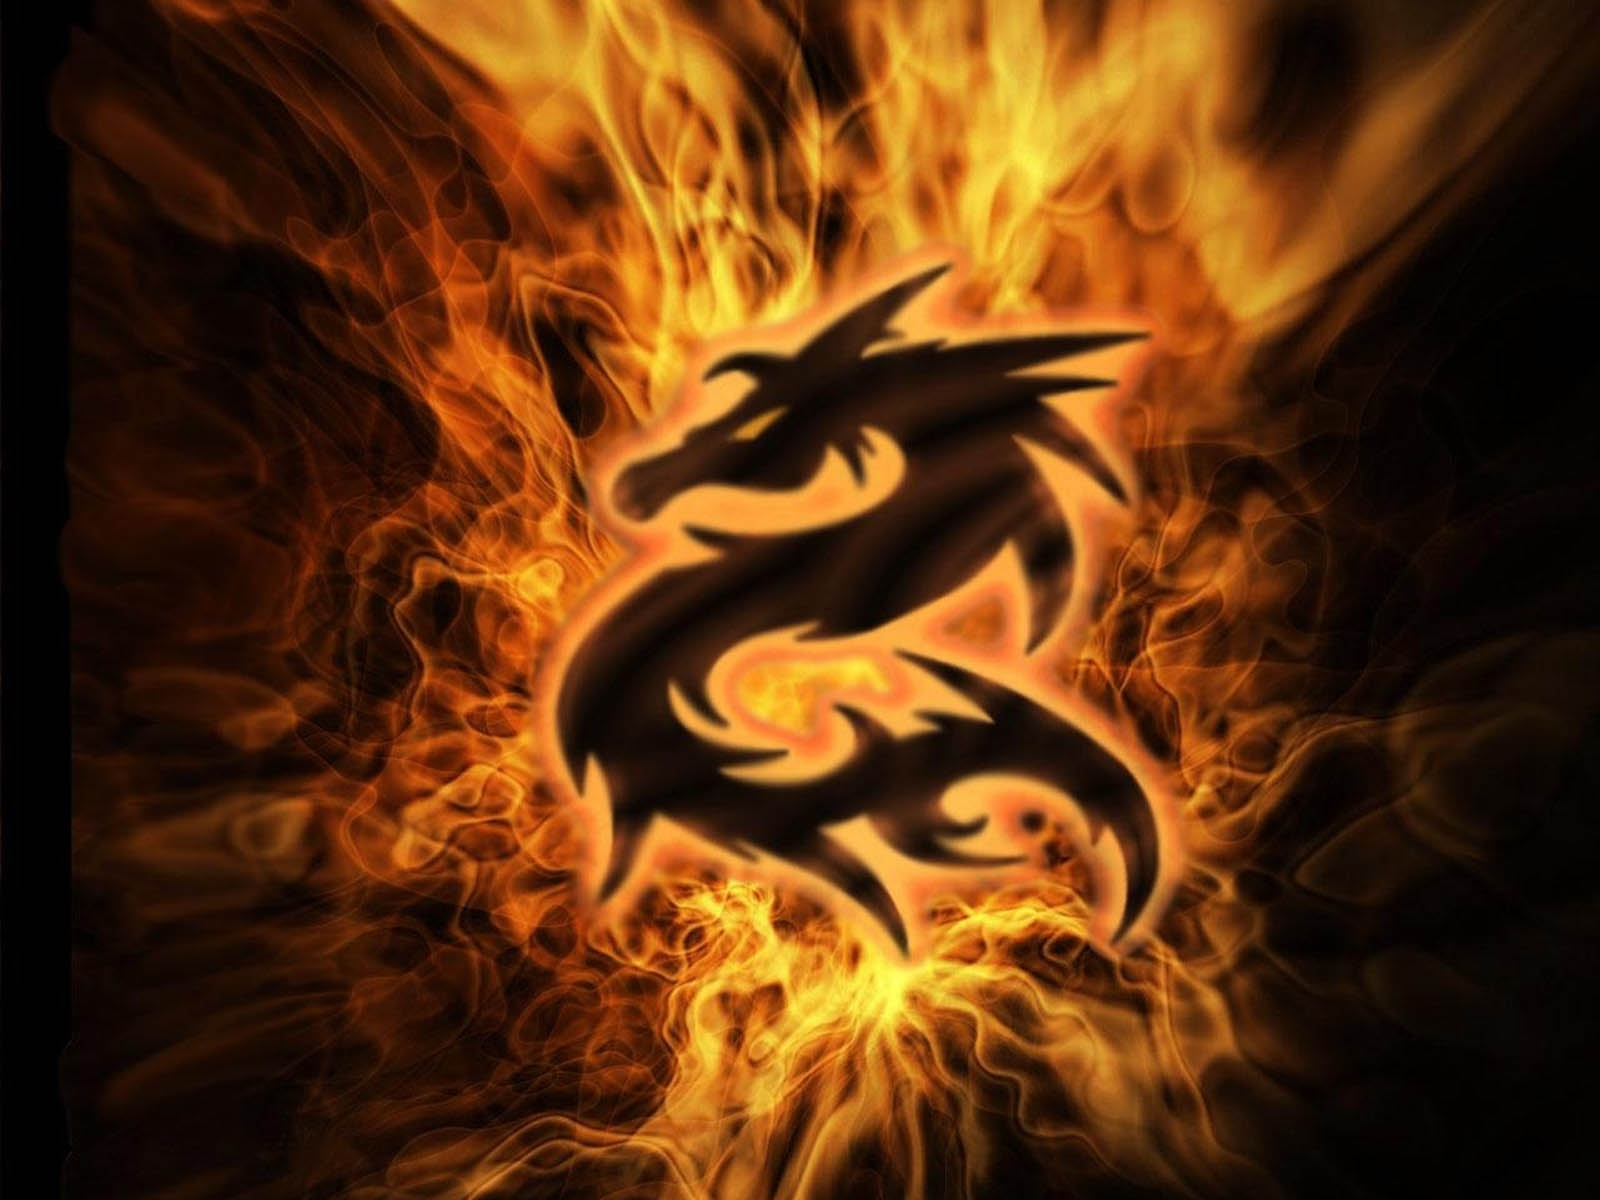 dragon wallpaper free download